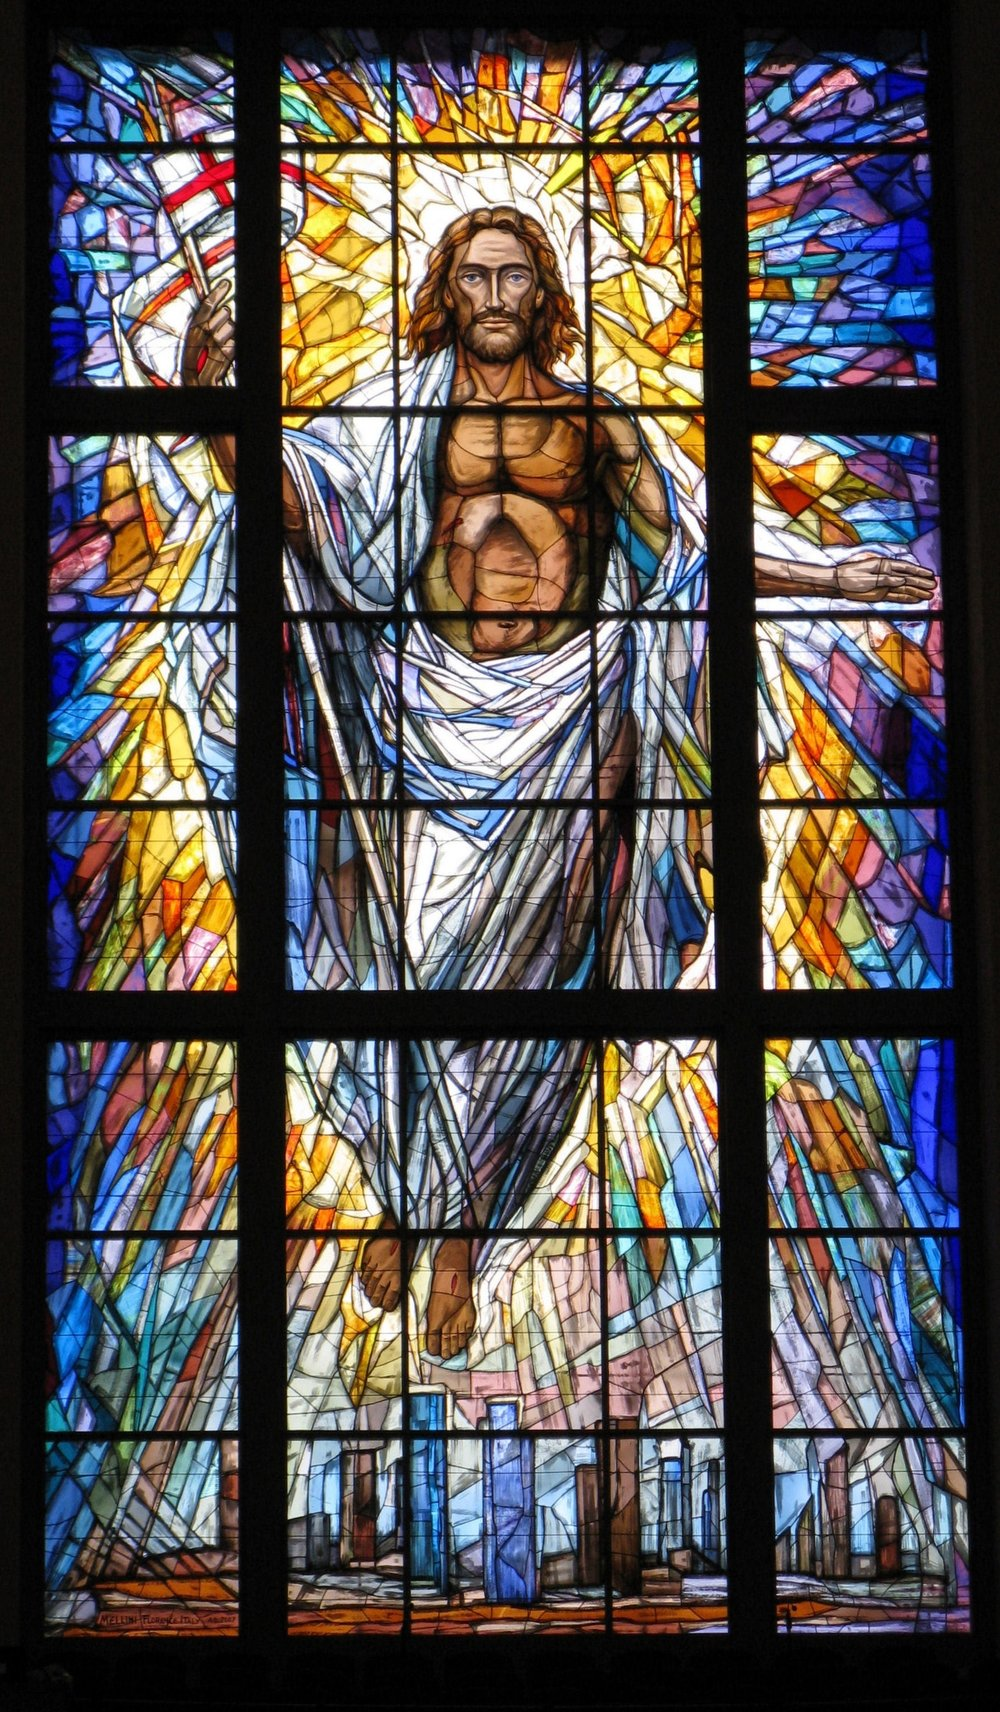 Photograph of window at the Co-Cathedral of the Sacred Heart taken by Gwen Kunz during a Primetimers day trip to the cathedral.